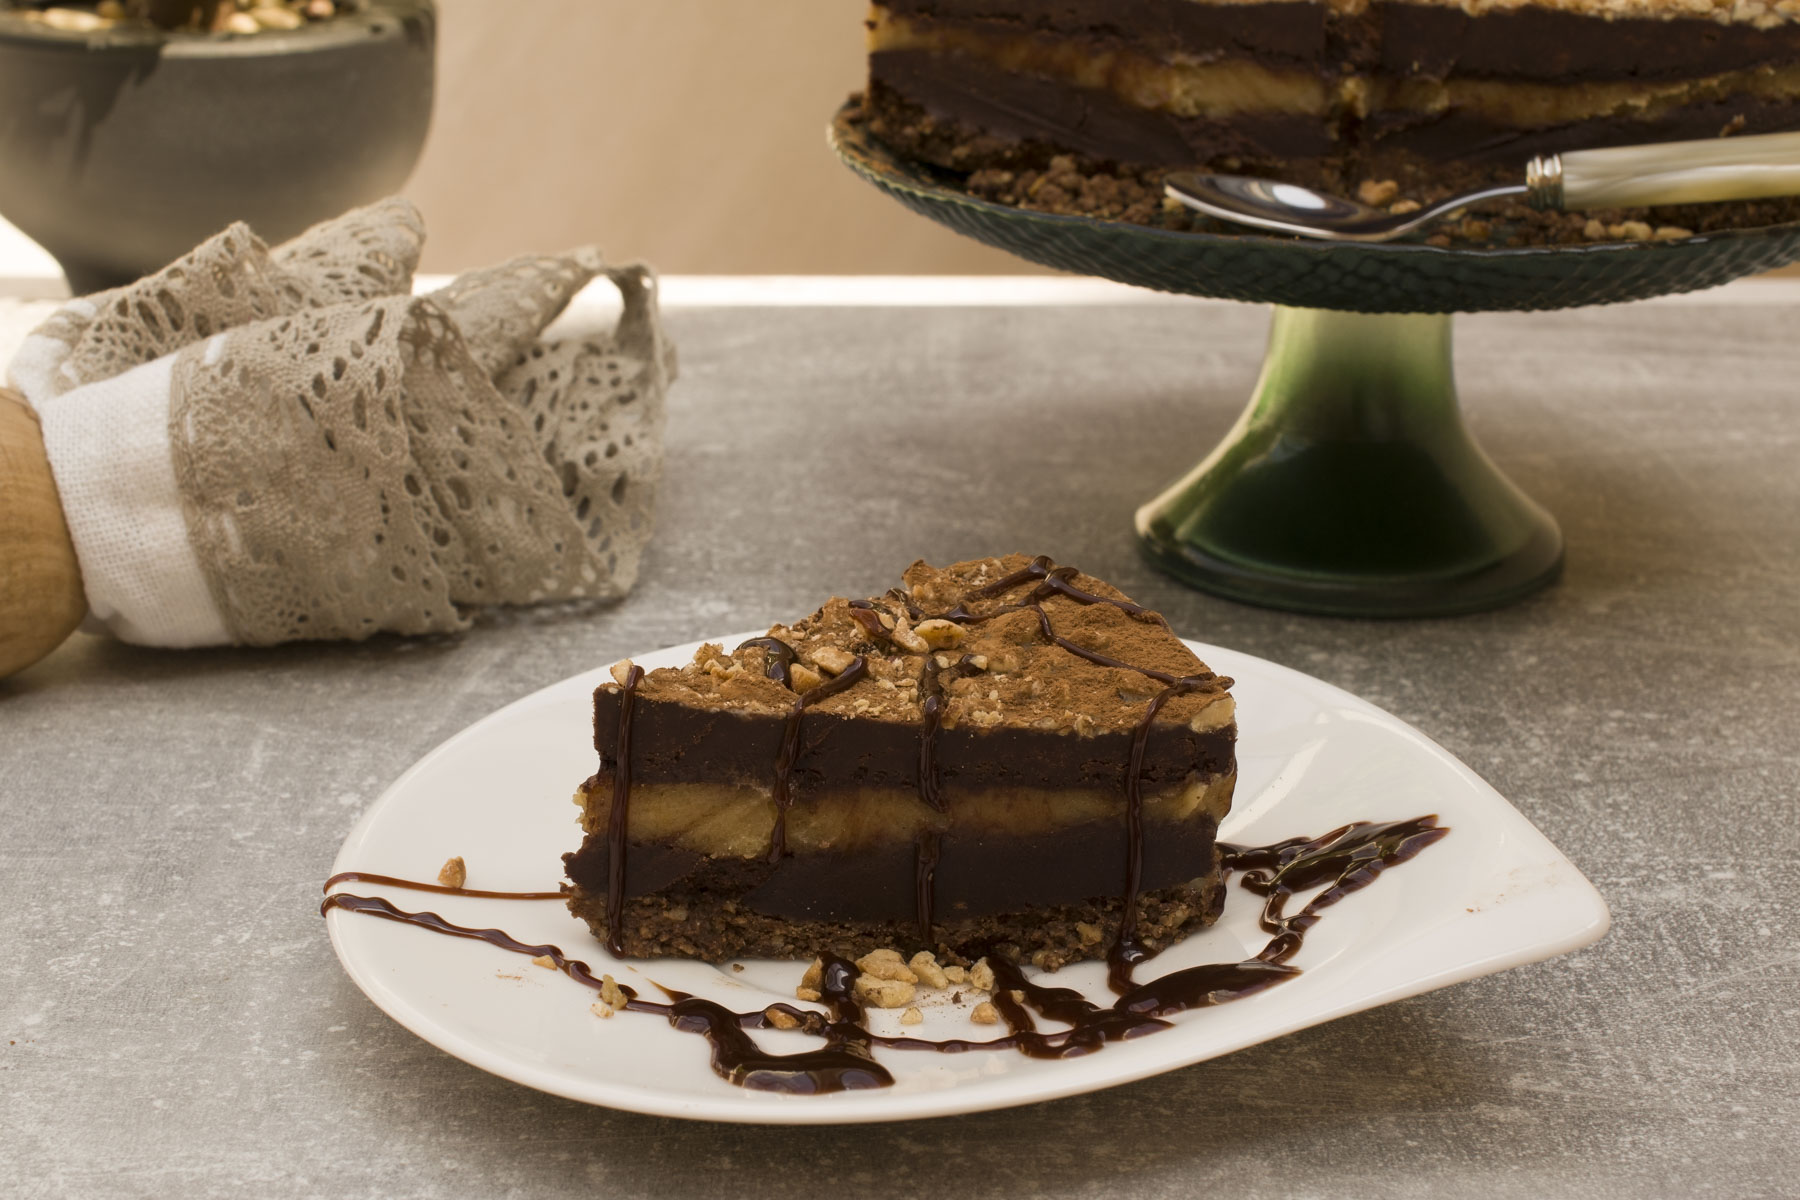 Cute little twisted chocolate and peanut butter cake